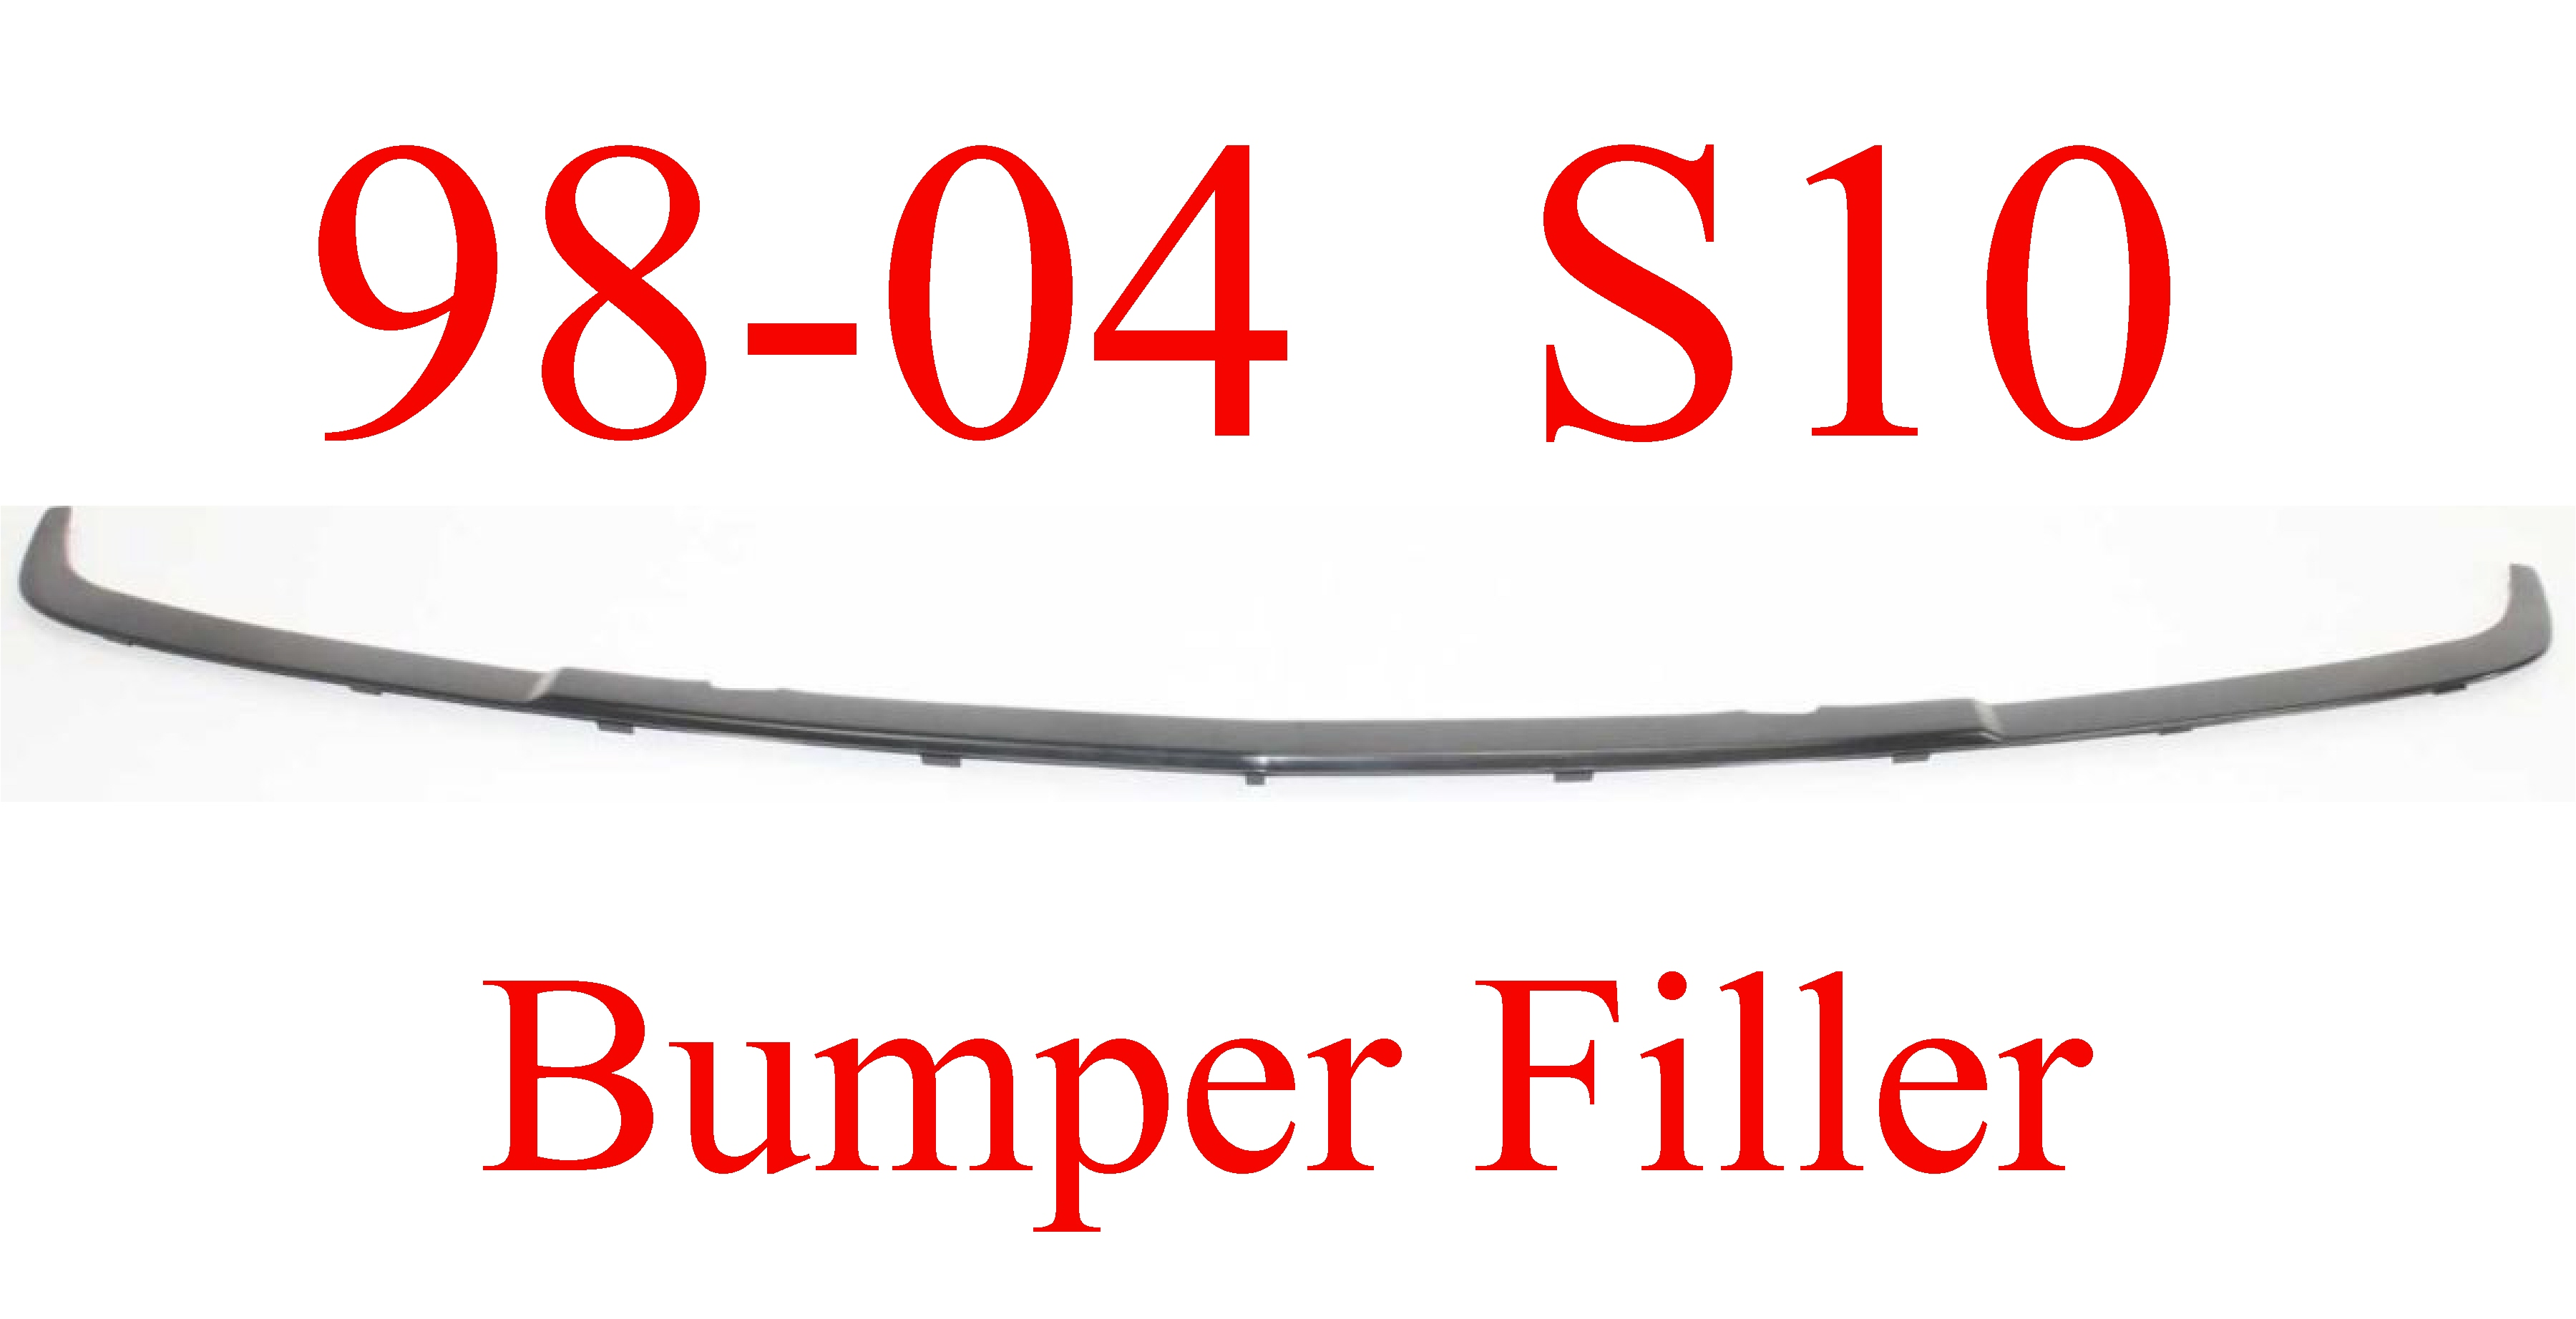 98 04 S10 Center Bumper Filler